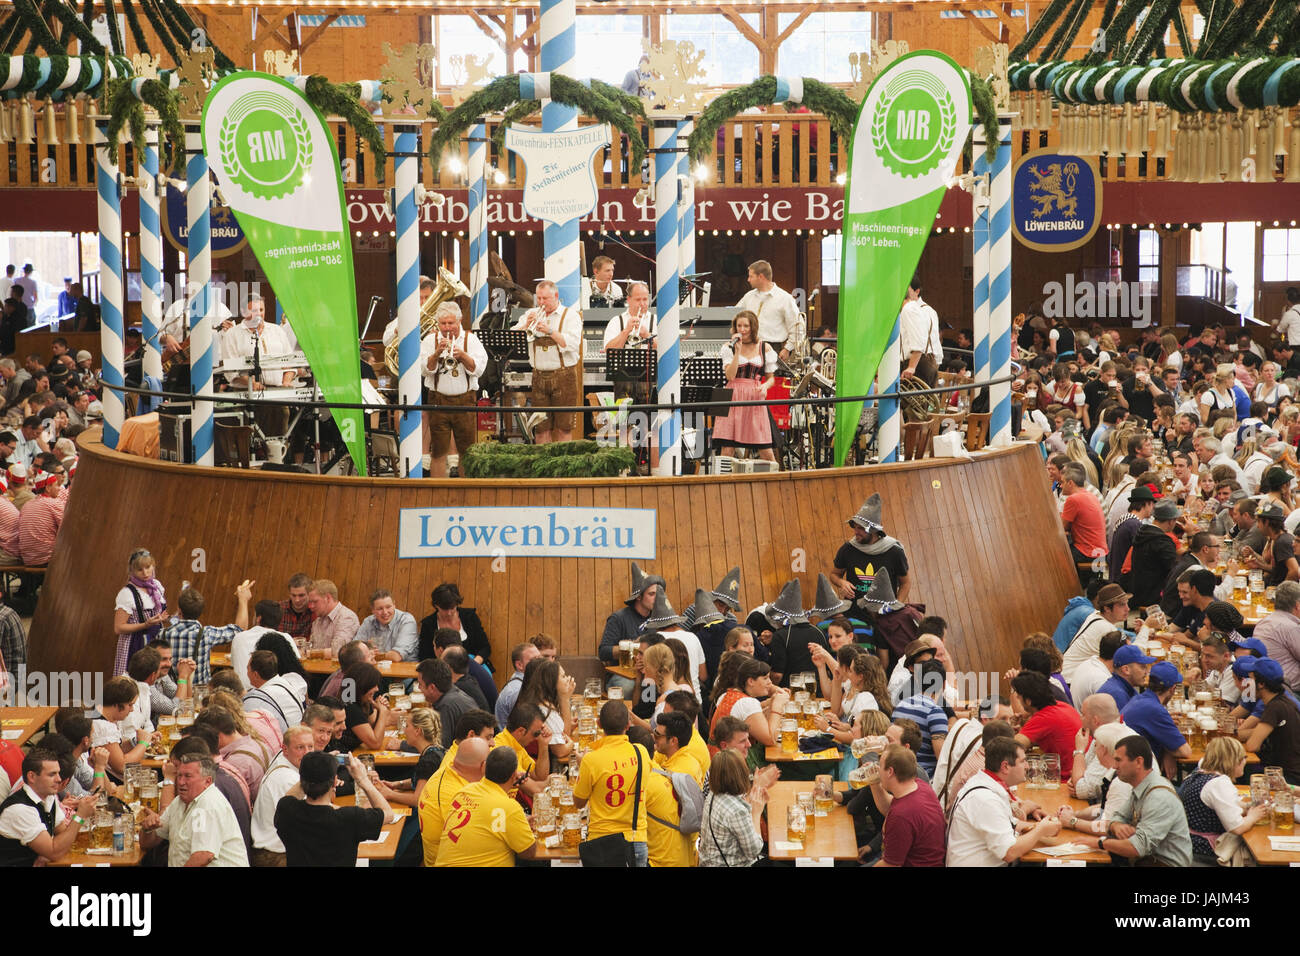 Germany,Bavaria,Munich,October feast,beer tent,guests,band,overview, - Stock Image